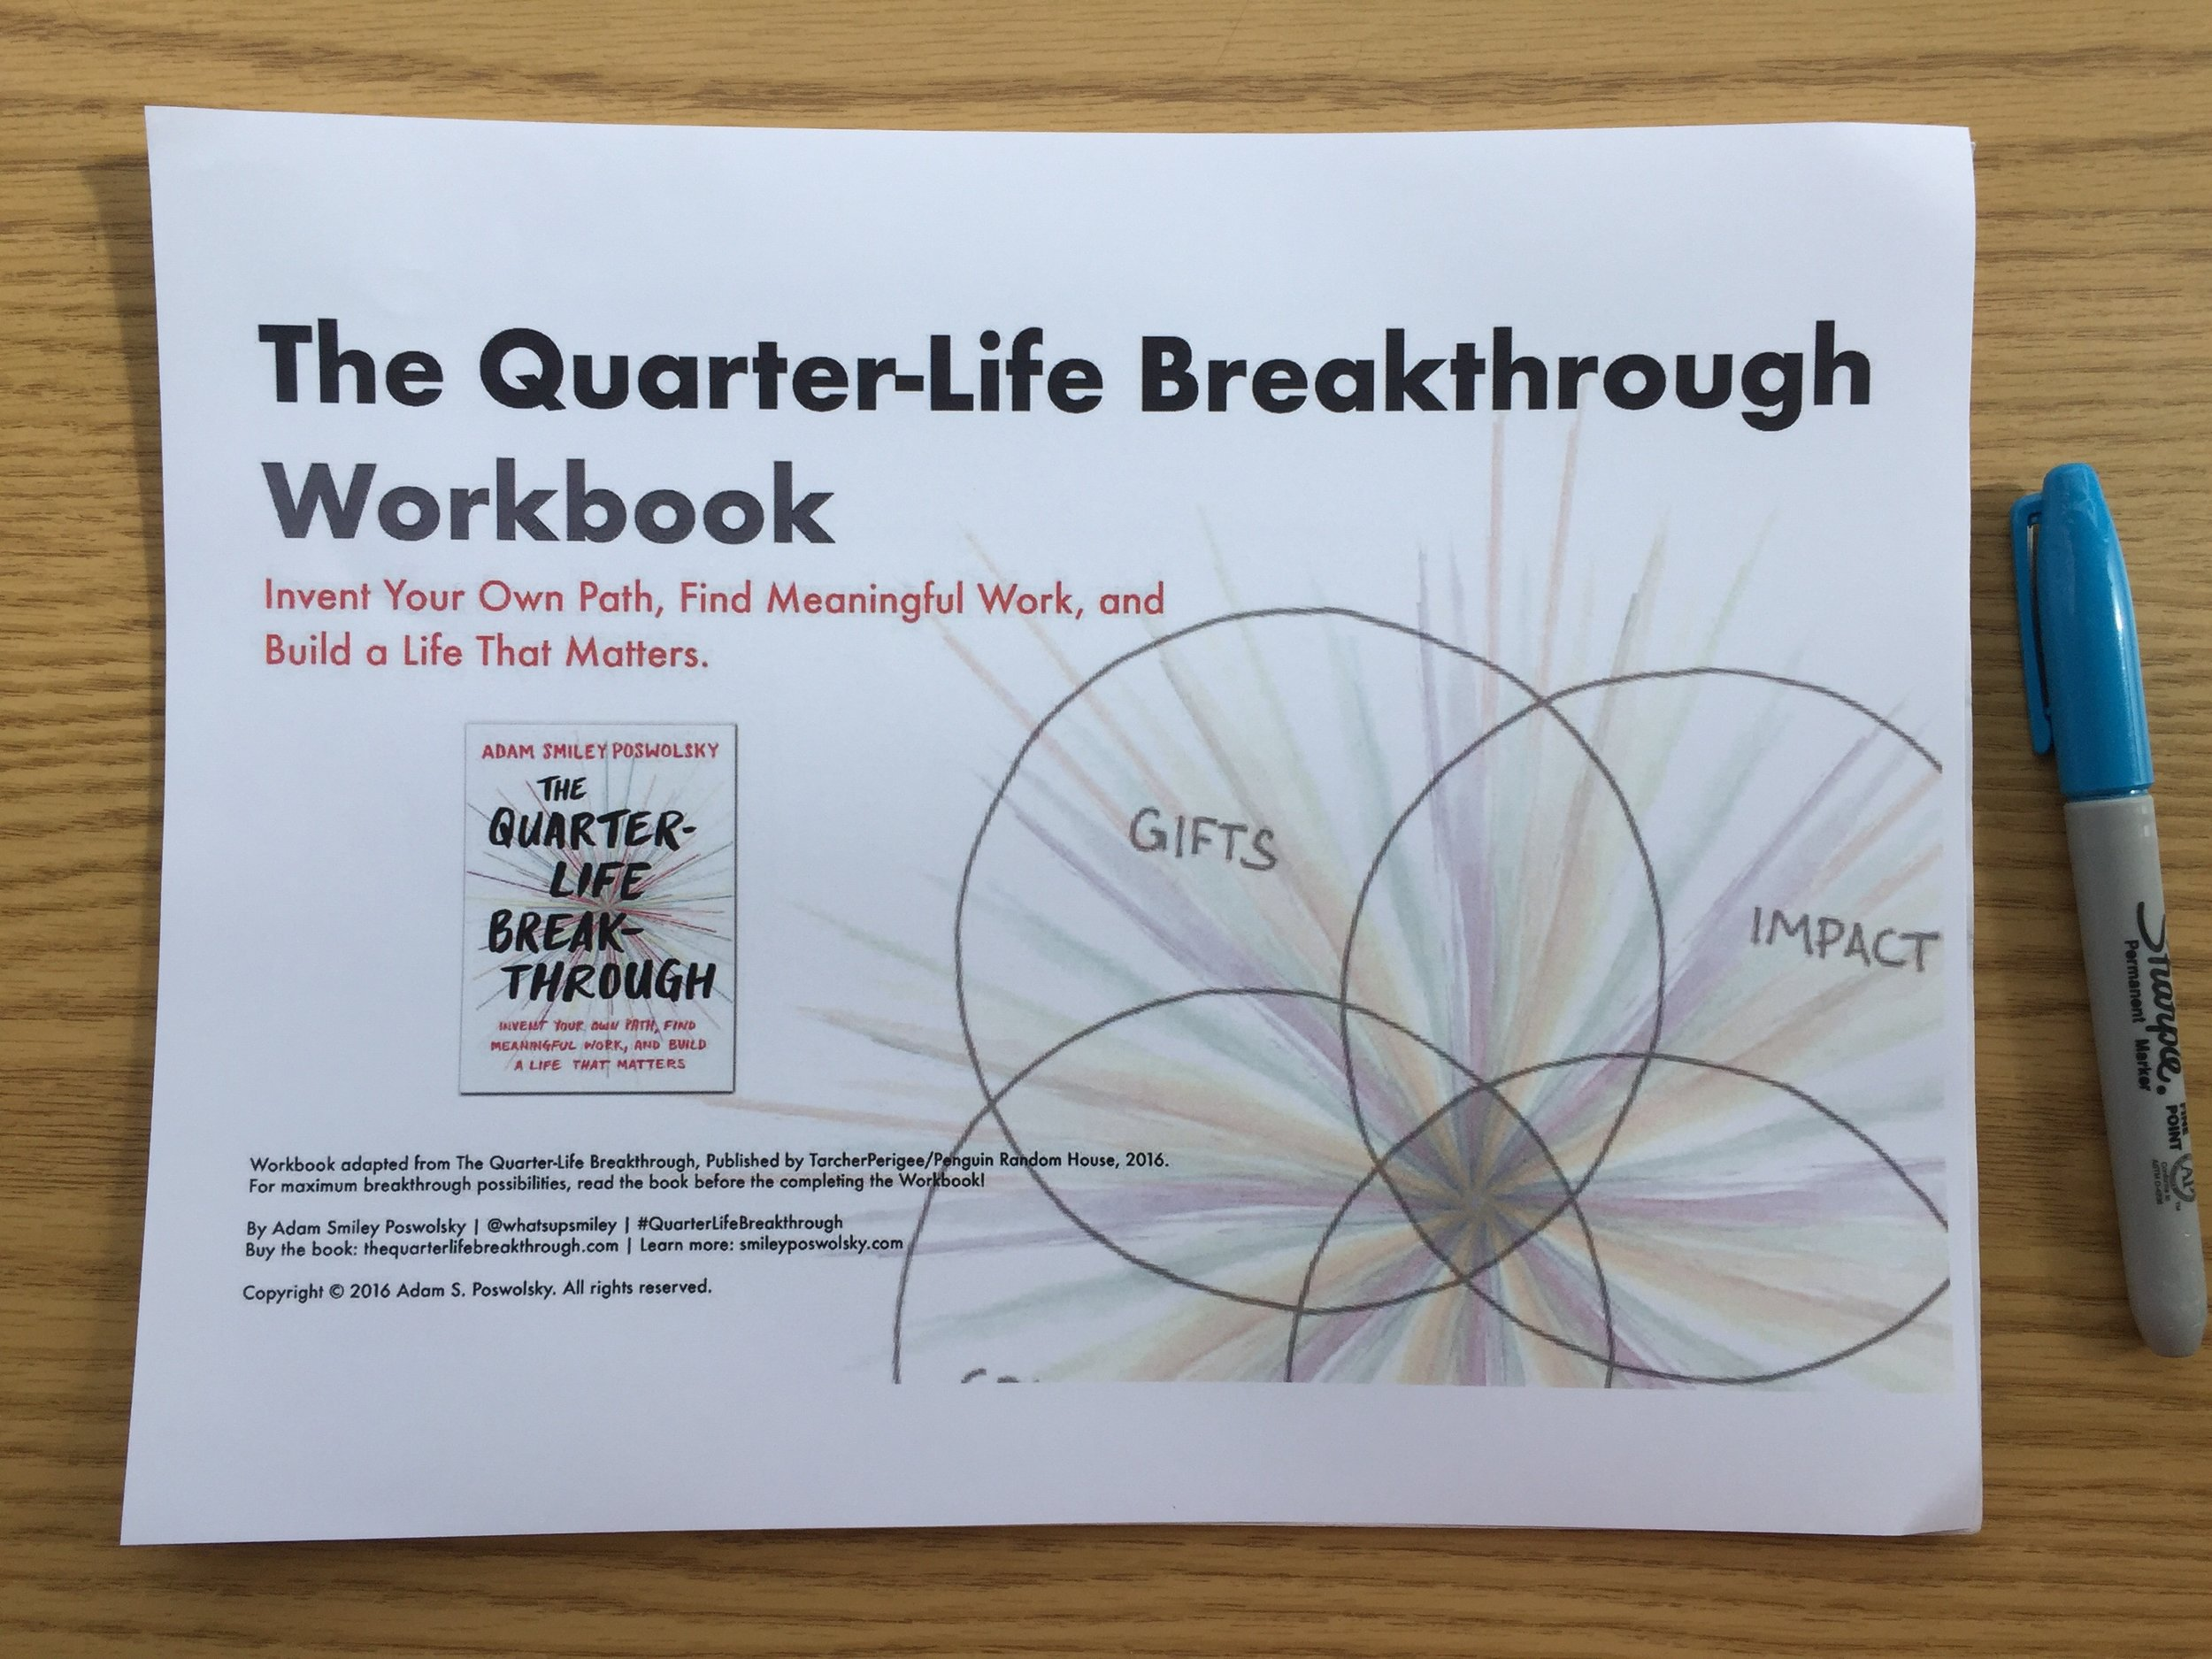 Quarter-Life Breakthrough Workbook